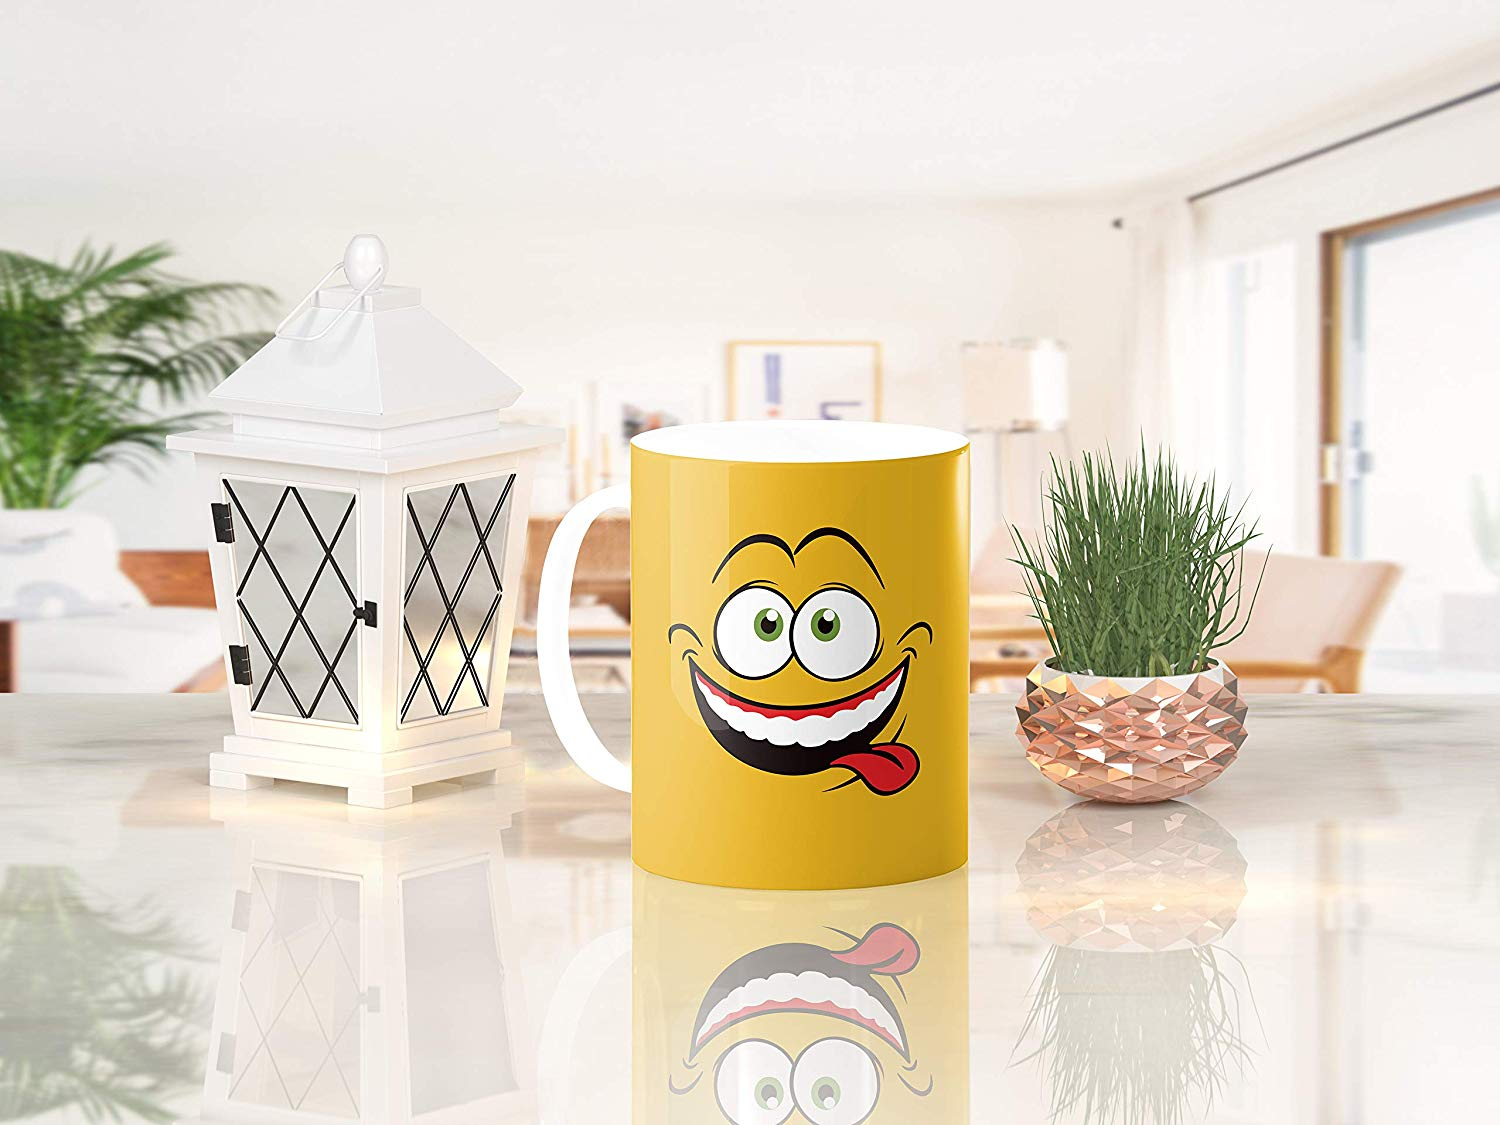 Heat Sensitive Color Changing Coffee Mug Funny Coffee Cup Yellow Drunk Funny Face Design Funny Gift Idea B079FWN7ZQ 9